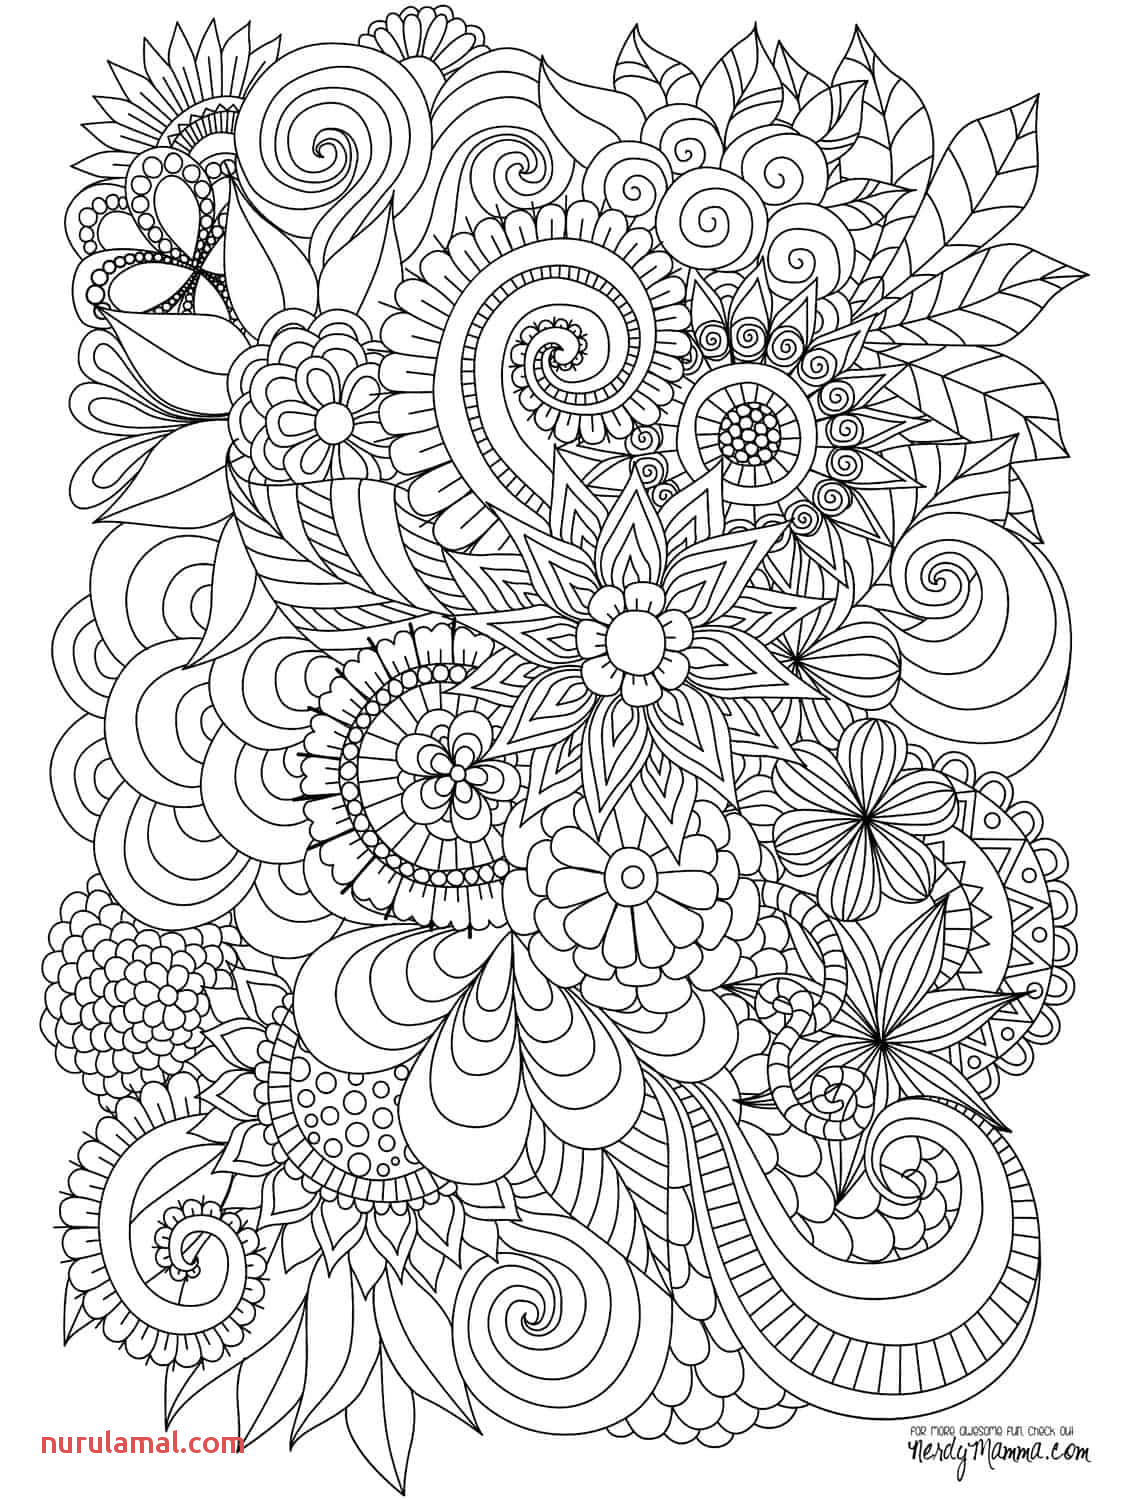 51 Best Adult Coloring Images